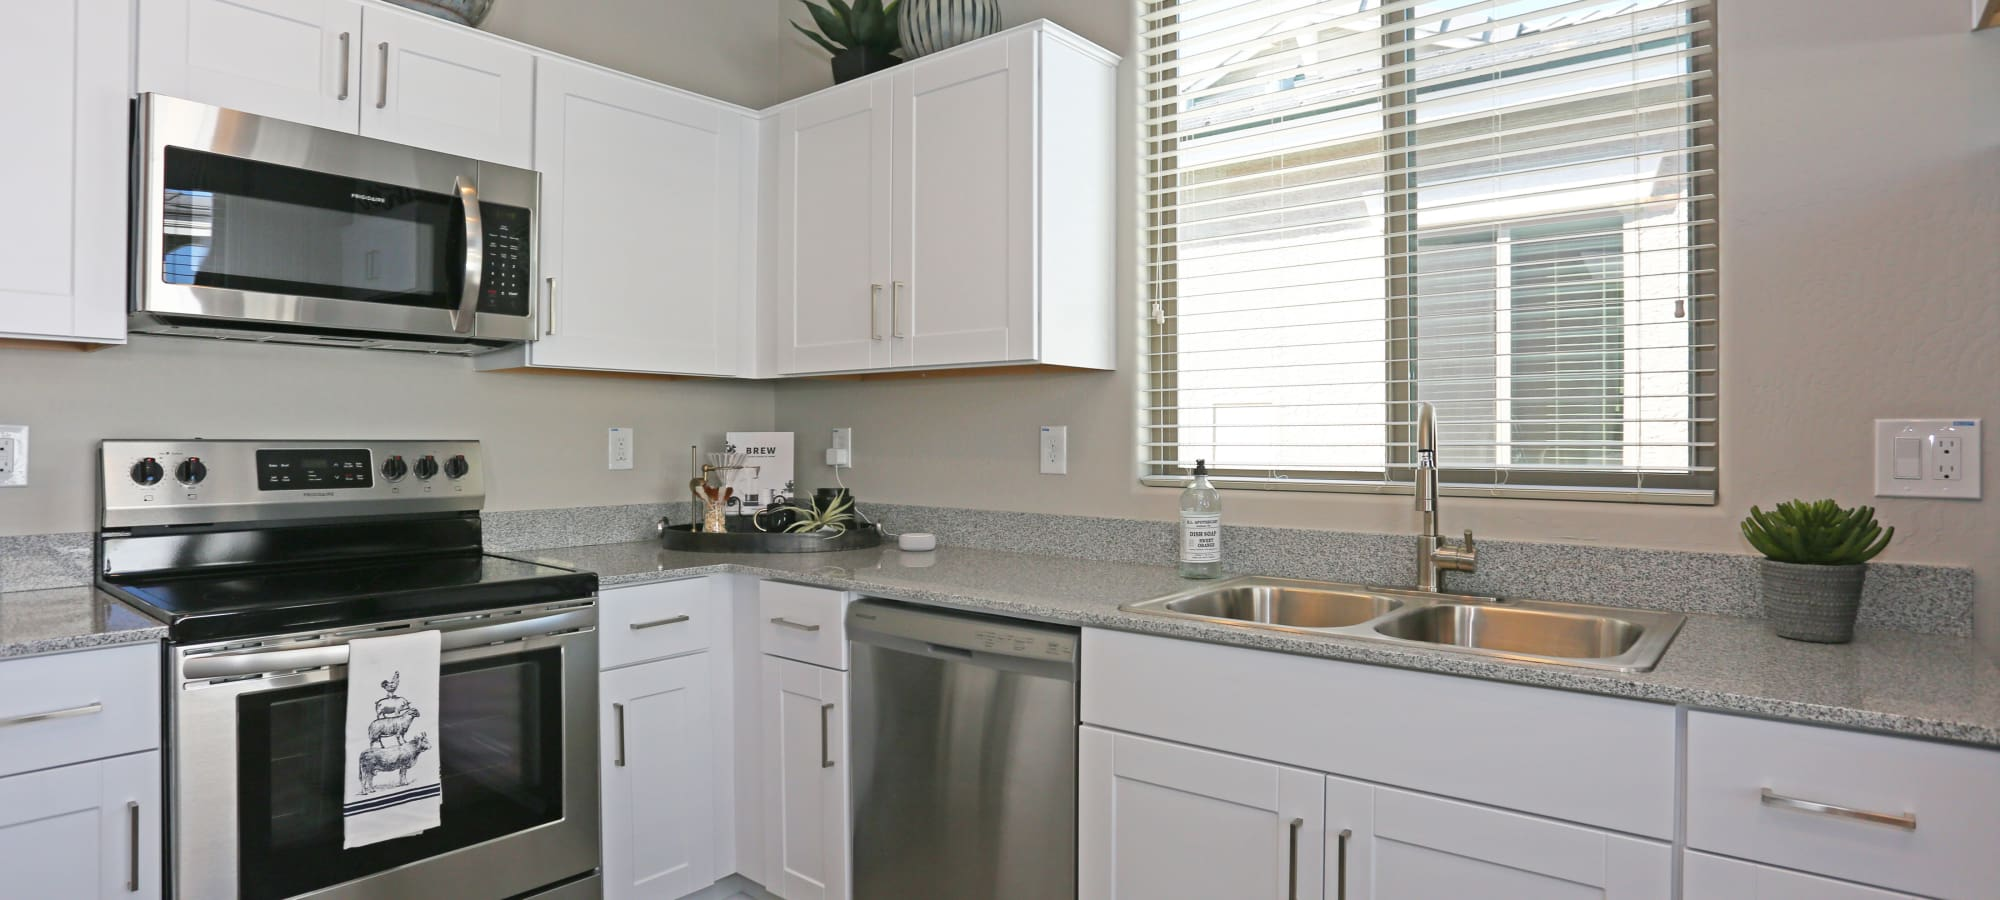 White cabinetry in kitchen of model home at Christopher Todd Communities At Stadium in Glendale, Arizona